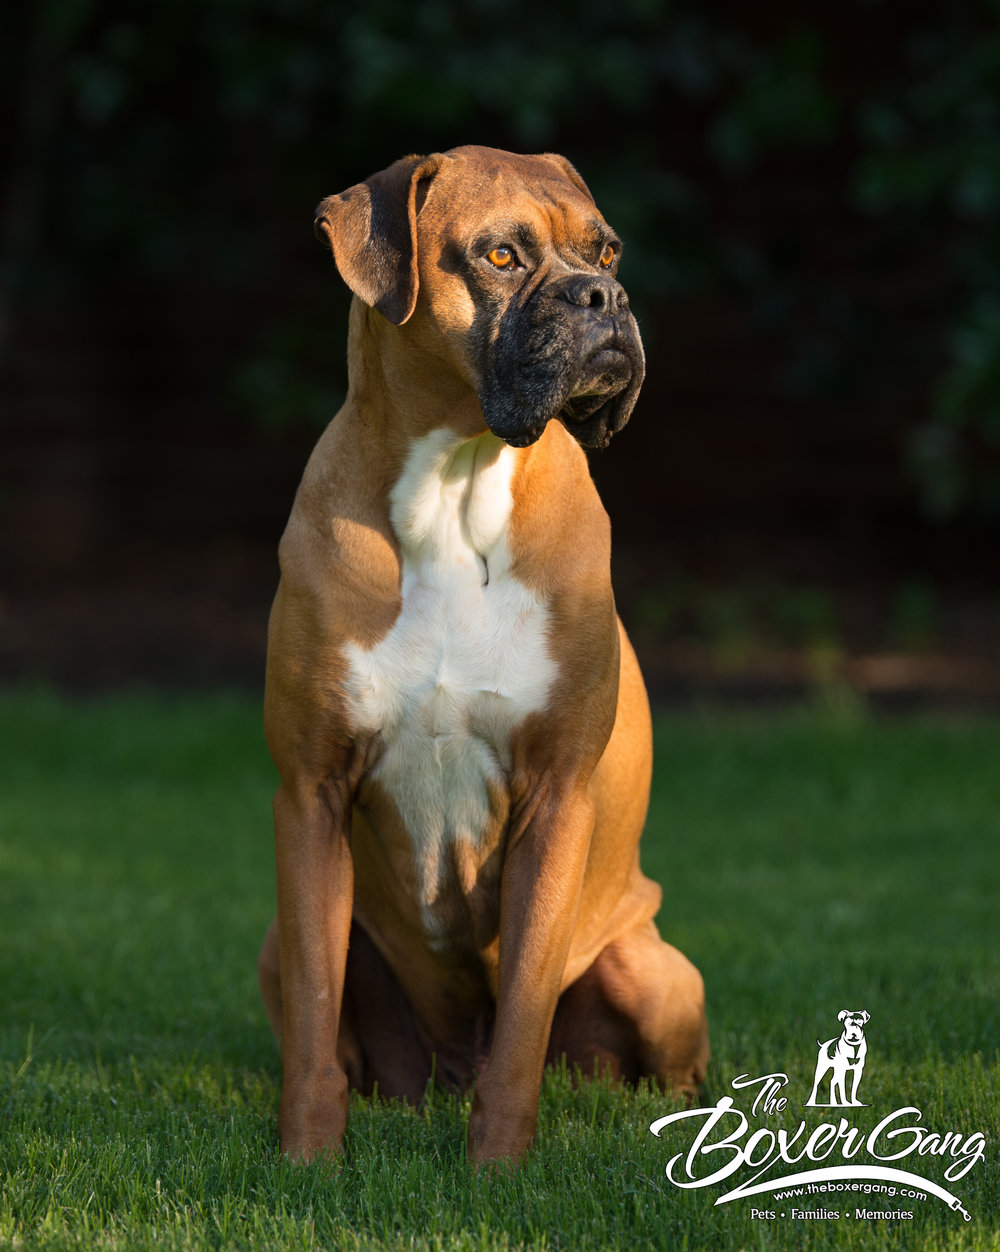 Zeus, the leader of The Boxer Gang